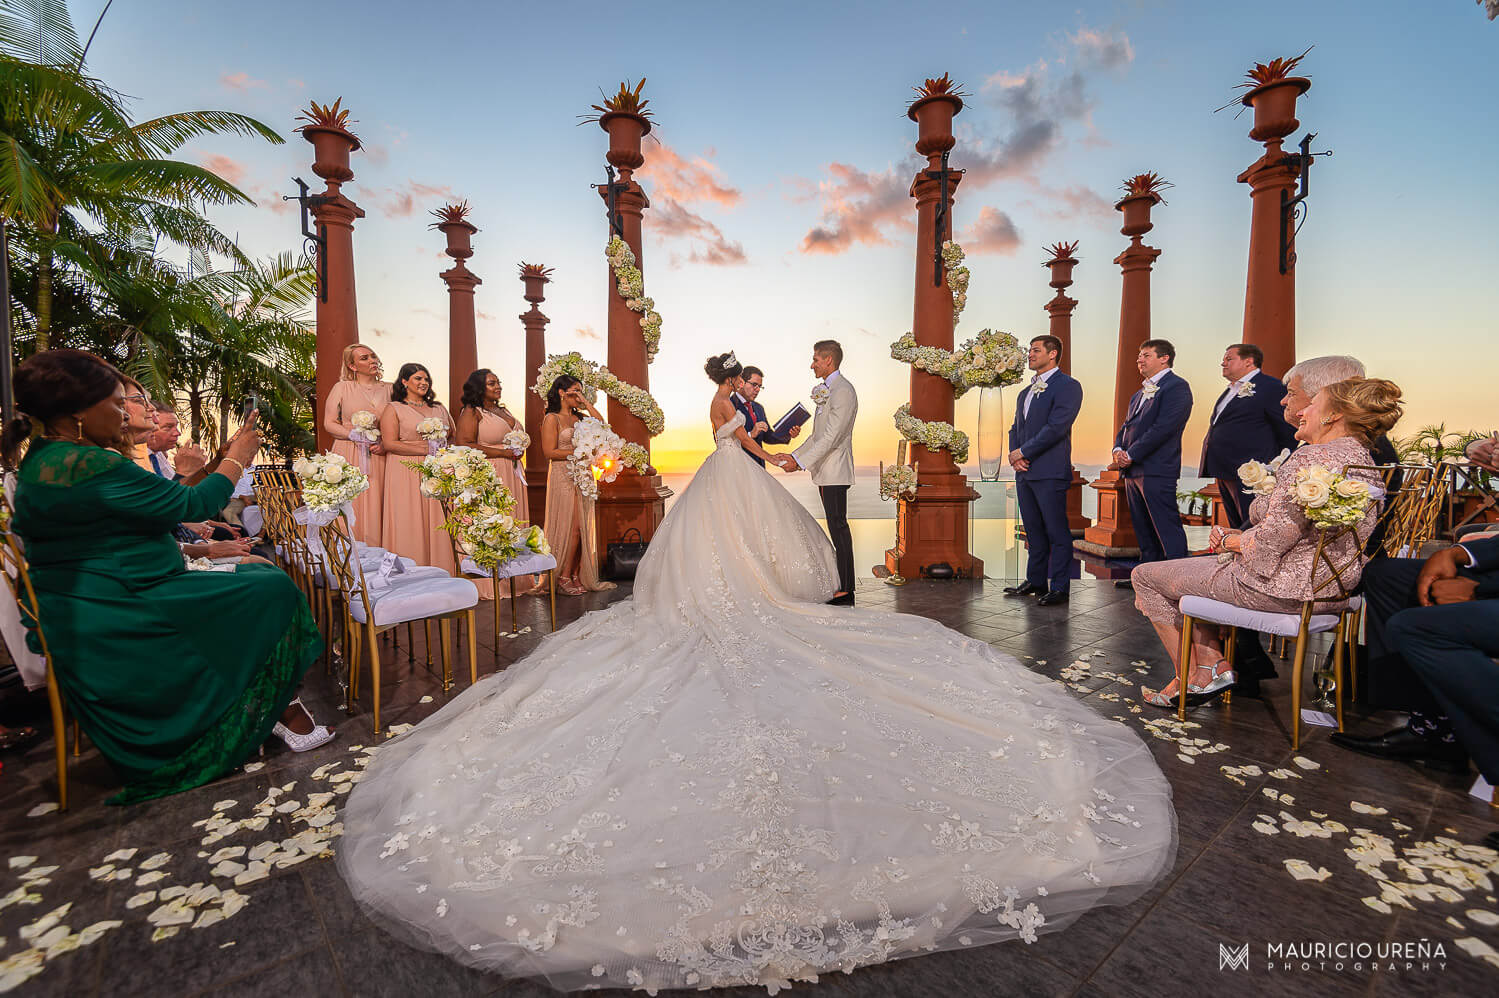 Zephyr Palace Wedding at Villa Caletas | Costa Rica Luxury Wedding Venue at Jaco Central Pacific Area | Noel Ibo Campos Costa Rica Wedding Officiant